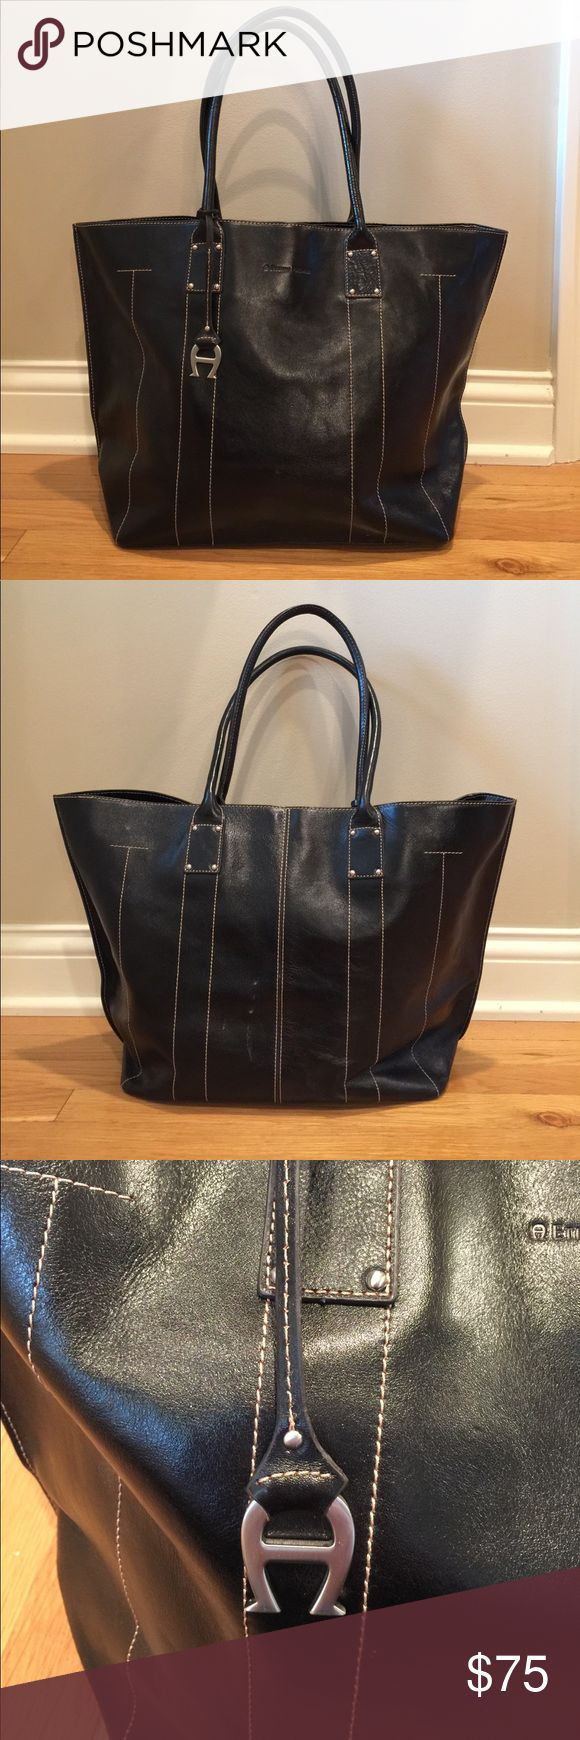 Etienne Aigner Handbag Etienne Aigner black handbag with detailed stitching. Small scuff on back of back (pictured). Excellent condition. Etienne Aigner Bags Totes